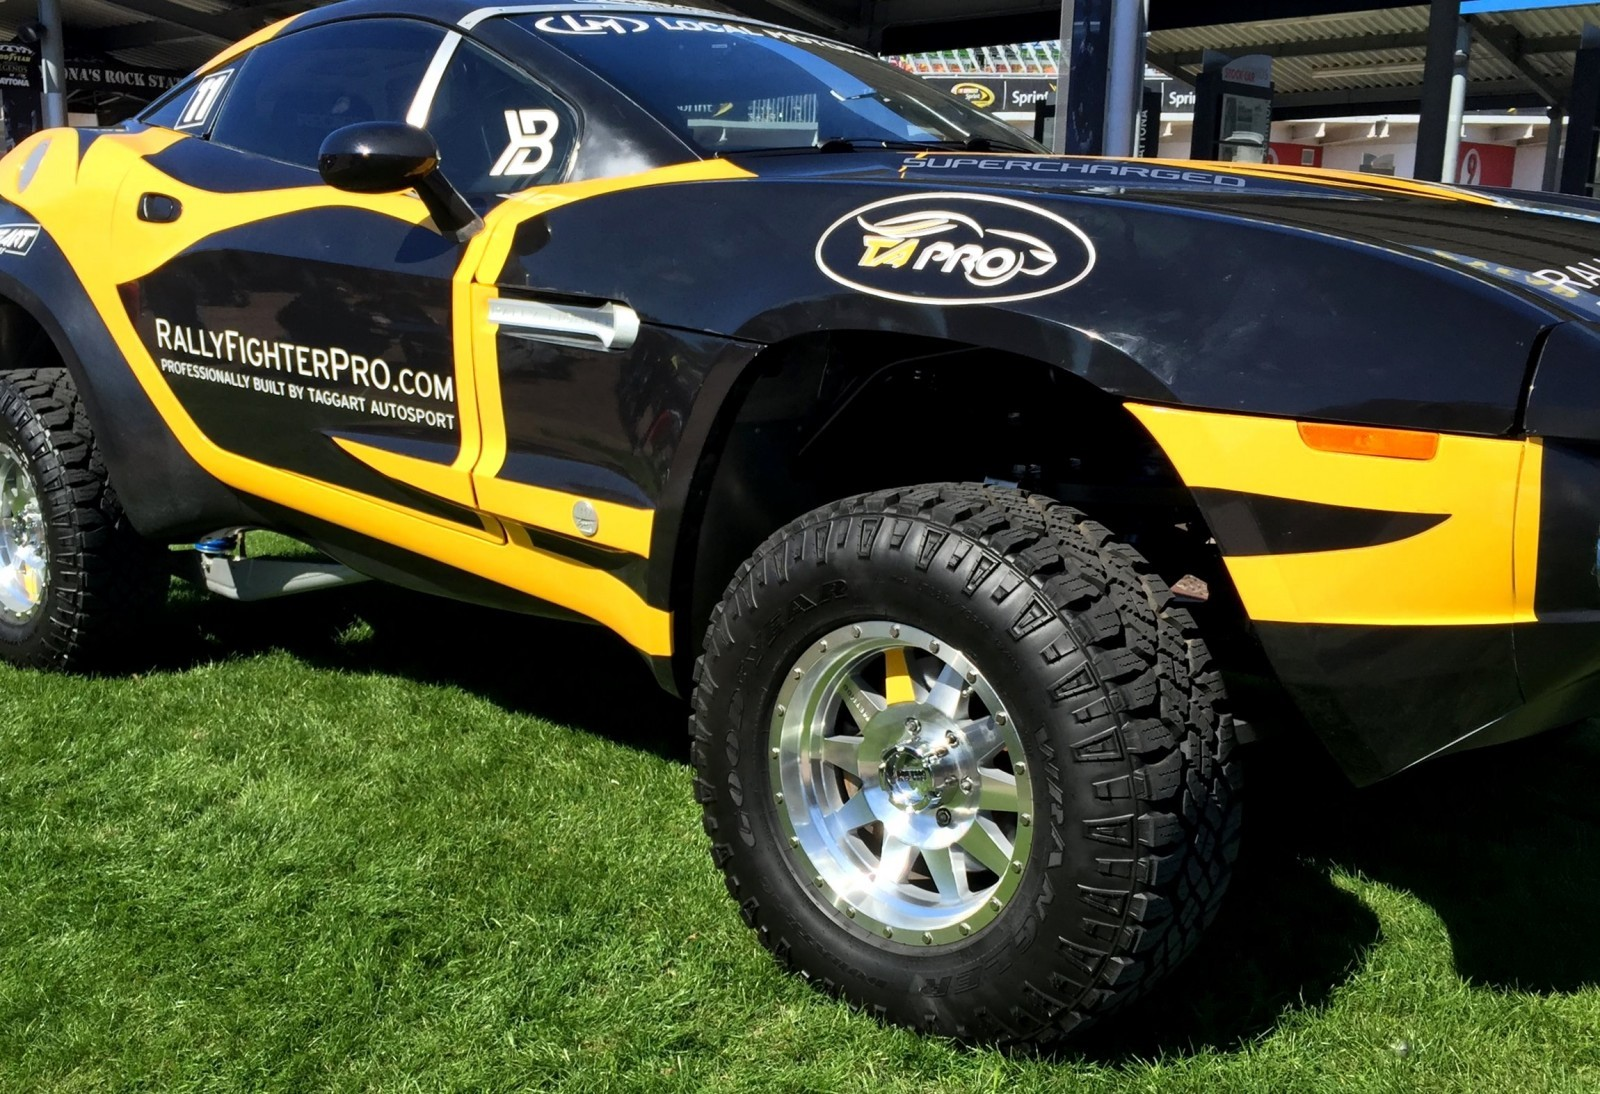 2015 Rally Fighter PRO By Taggart Autosport 20